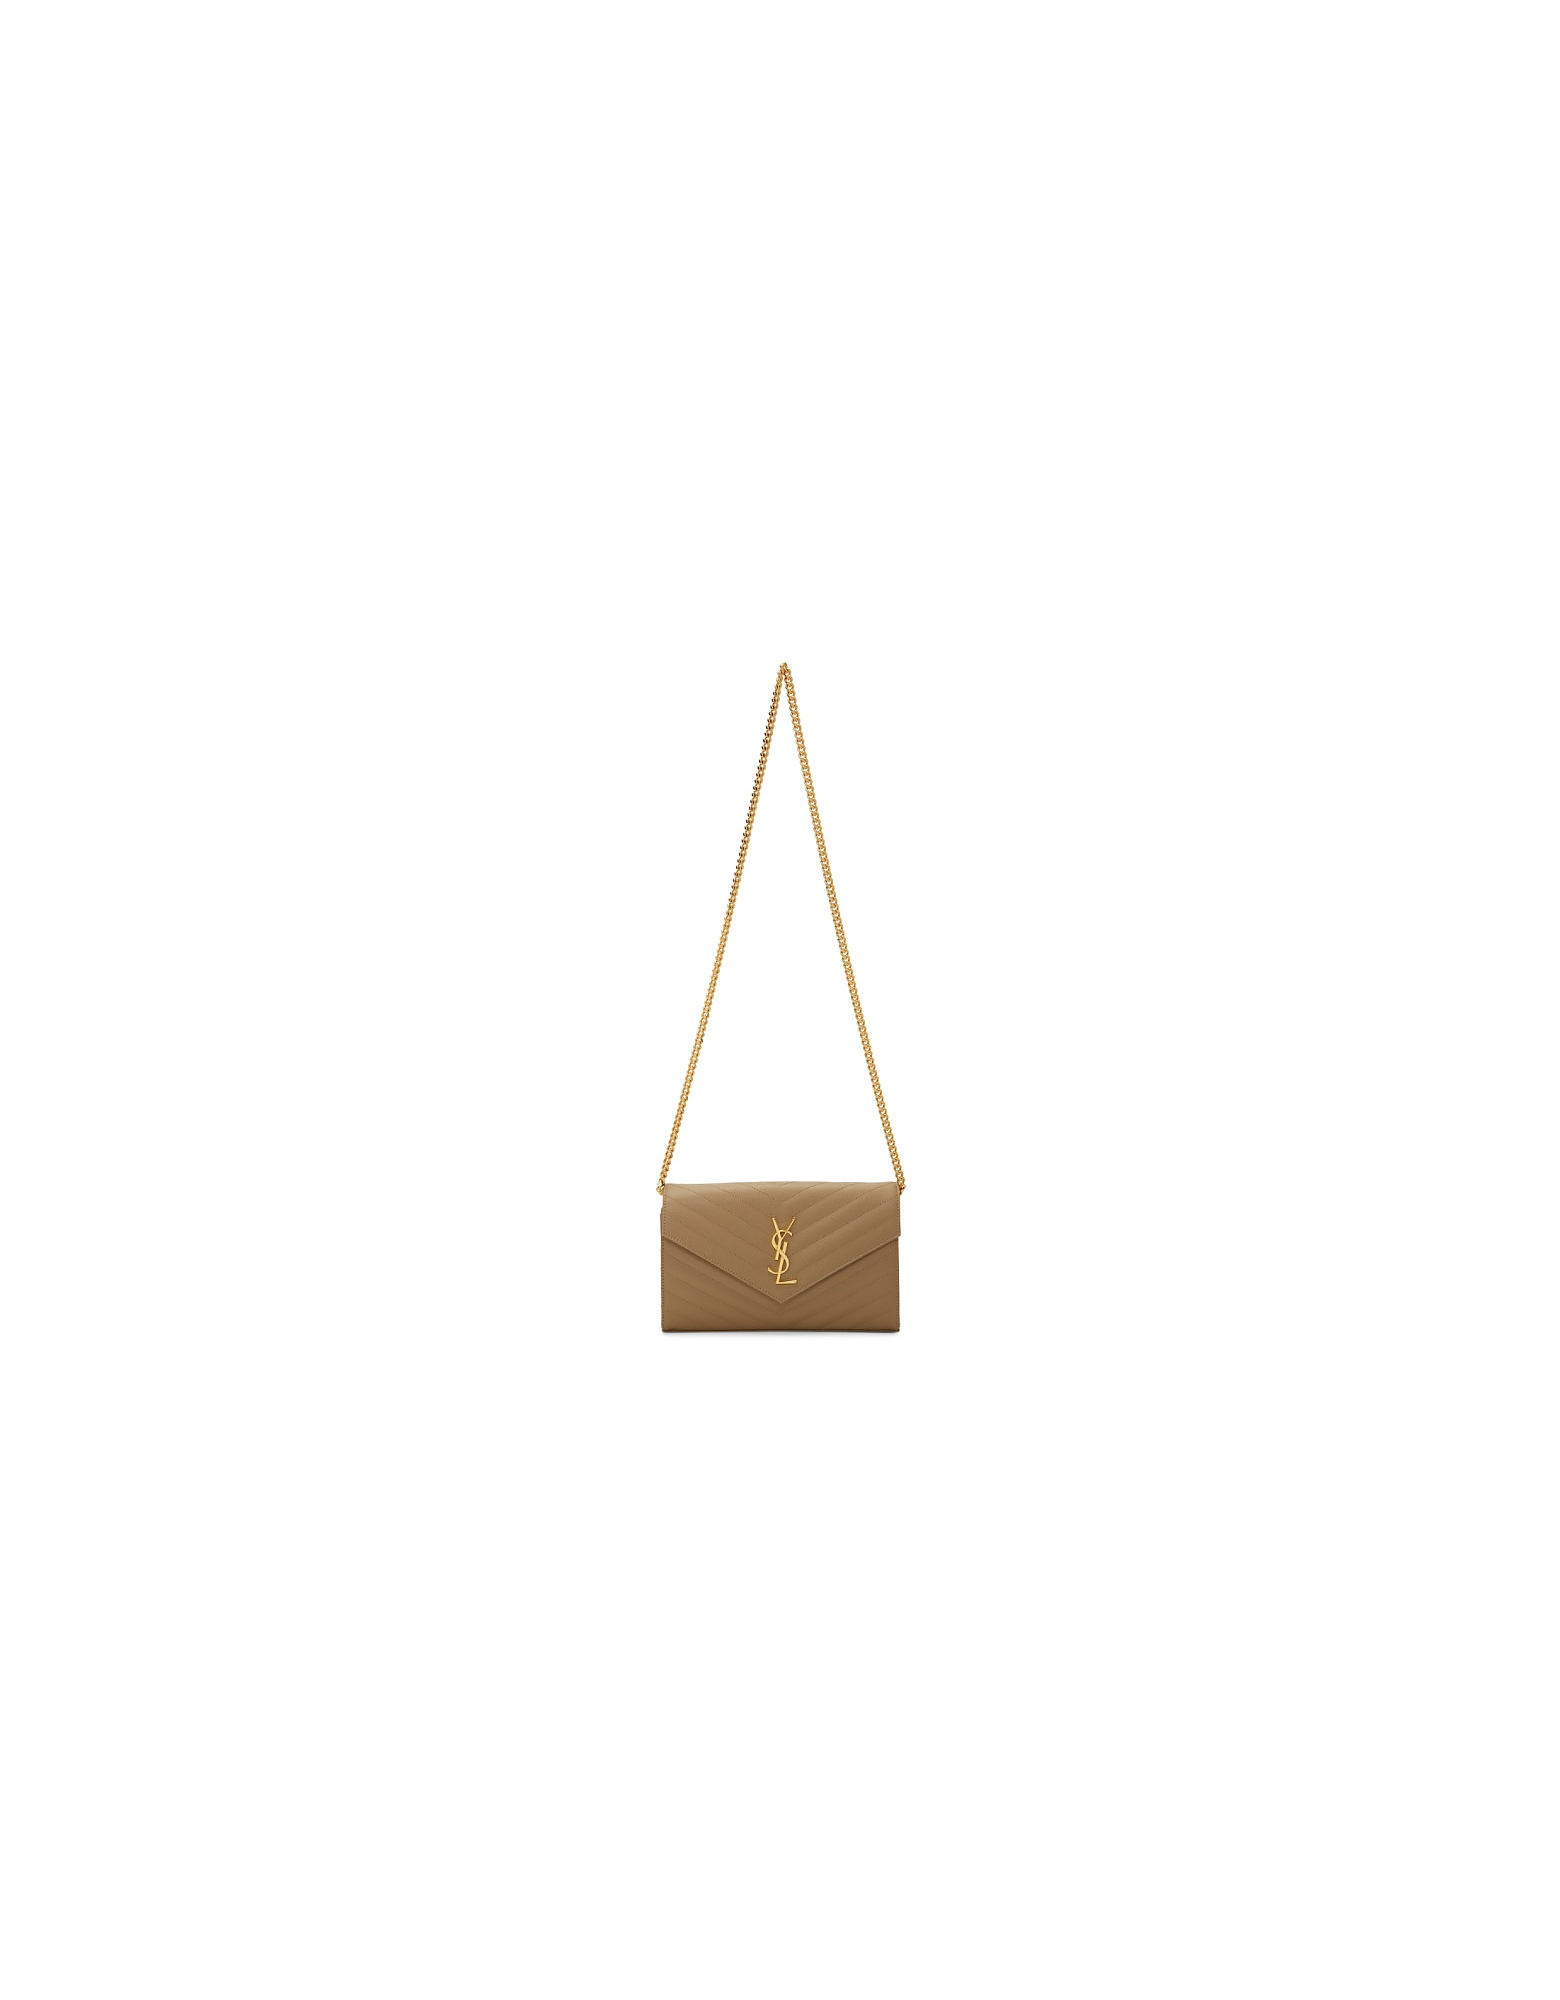 Saint Laurent Designer Handbags, Beige Monogramme Chain Wallet Bag